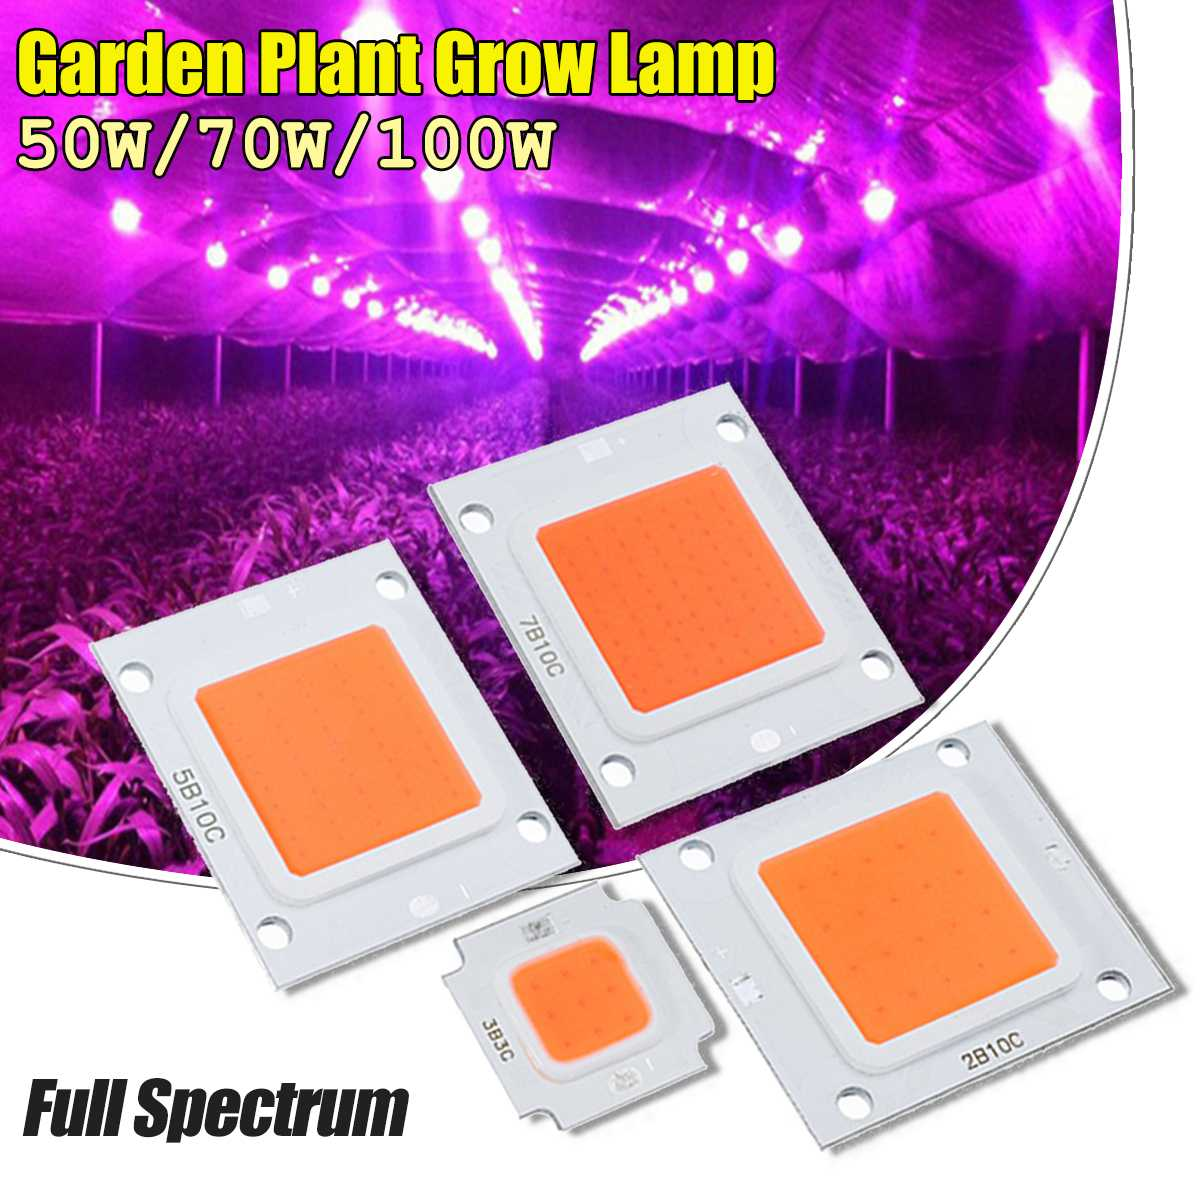 Newest 50W 70W 100W COB LED Chip Indoor Plants Flower Garden Plant Grow Lamp Light Chip DIY Full Spectrum Diode LED Grow Lights